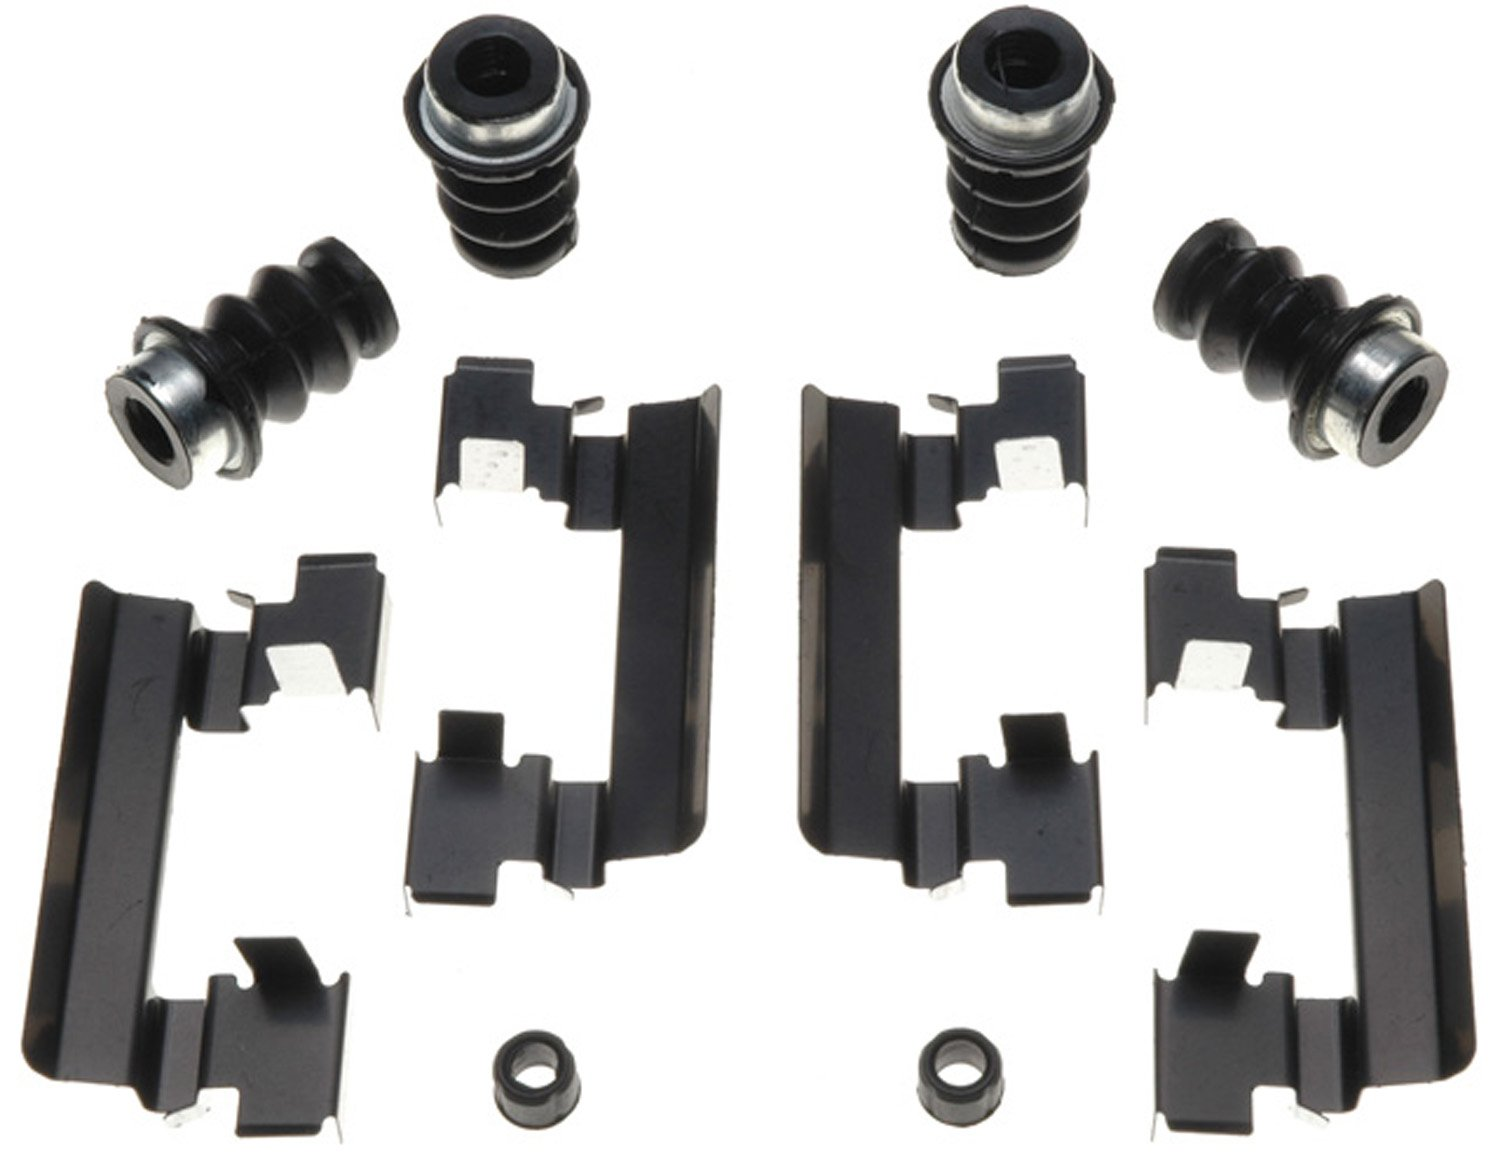 ACDelco 18K1567X Professional Front Disc Brake Caliper Hardware Kit with Clips, Seals, and Bushings